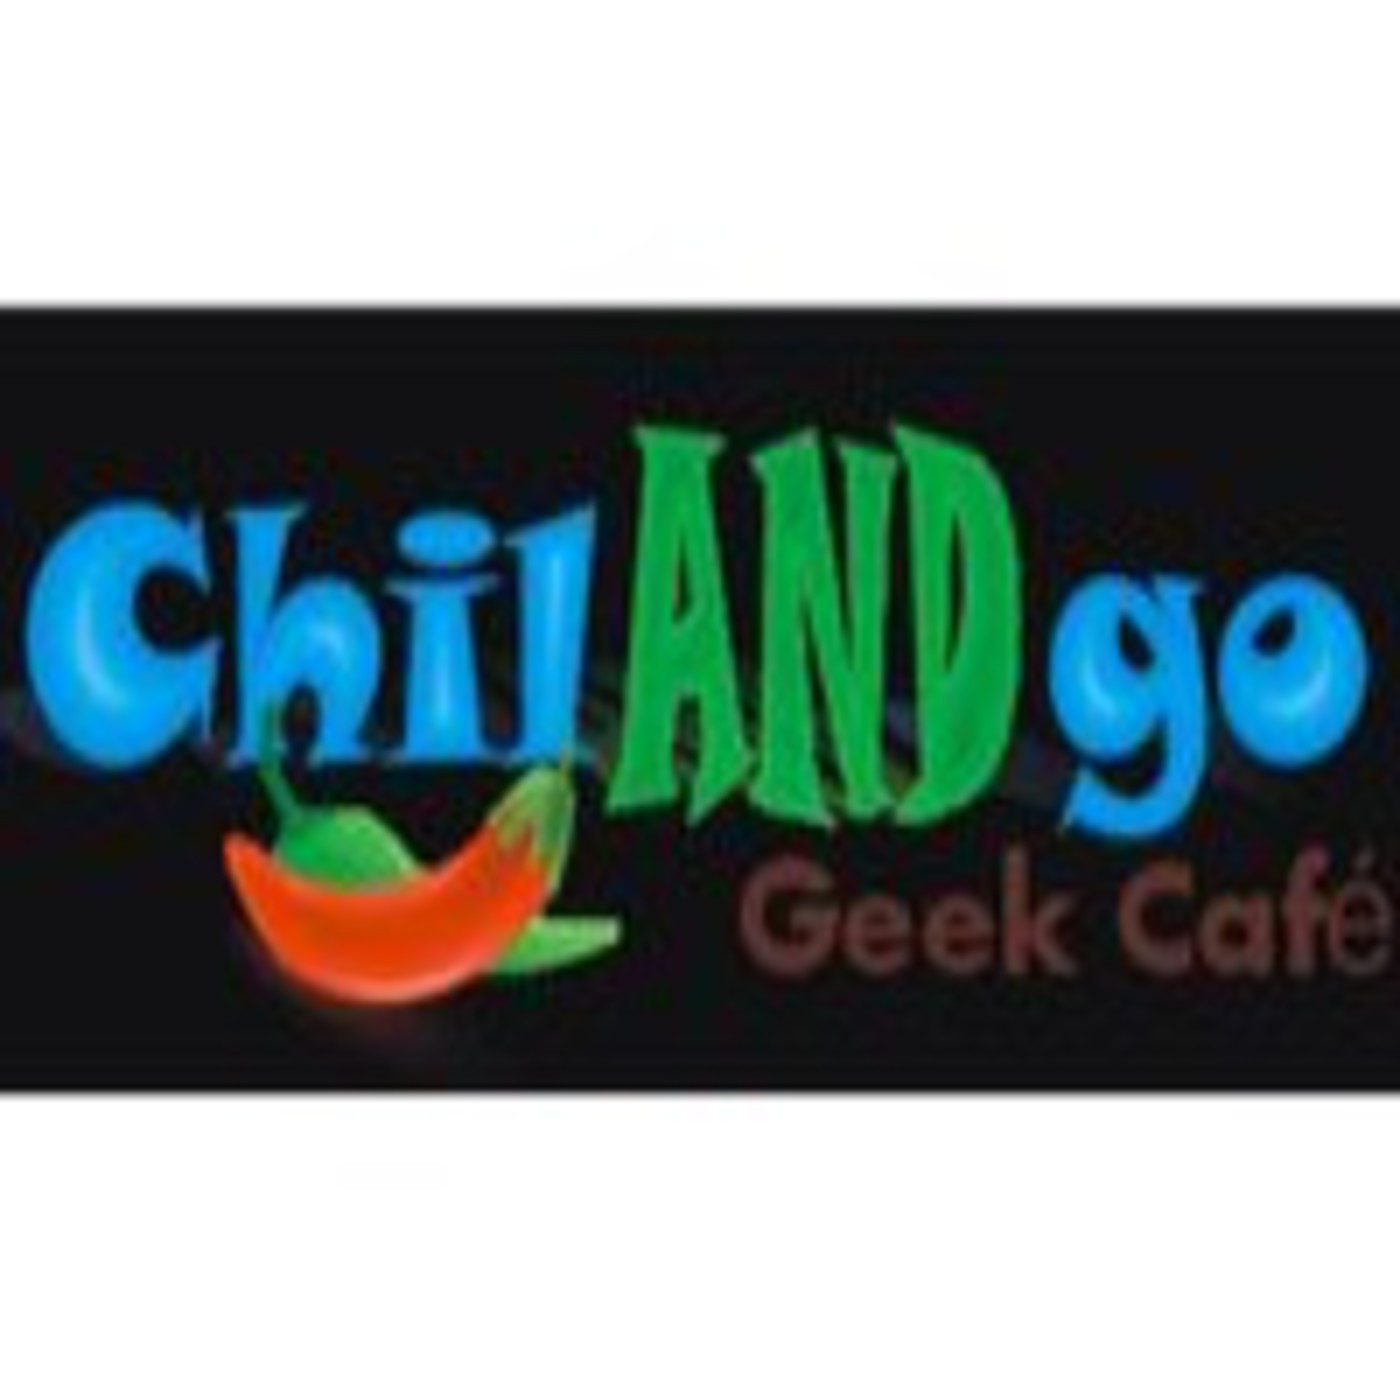 chilANDgo Geek Cafe